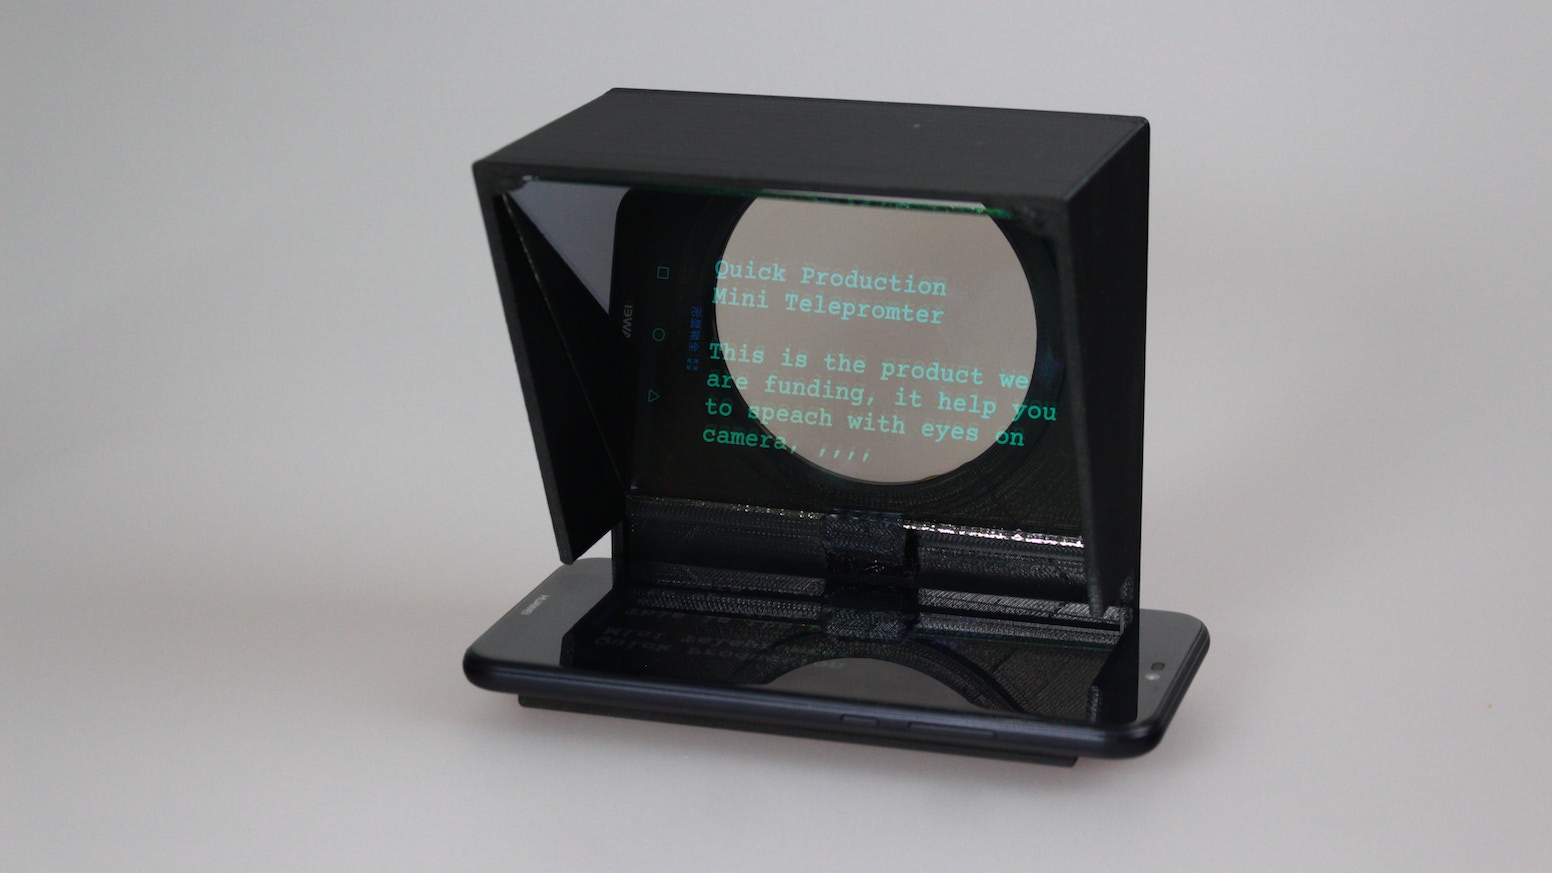 A Pro display device that prompts the person speaking with an electronic visual text of a speech, using any smartphone.